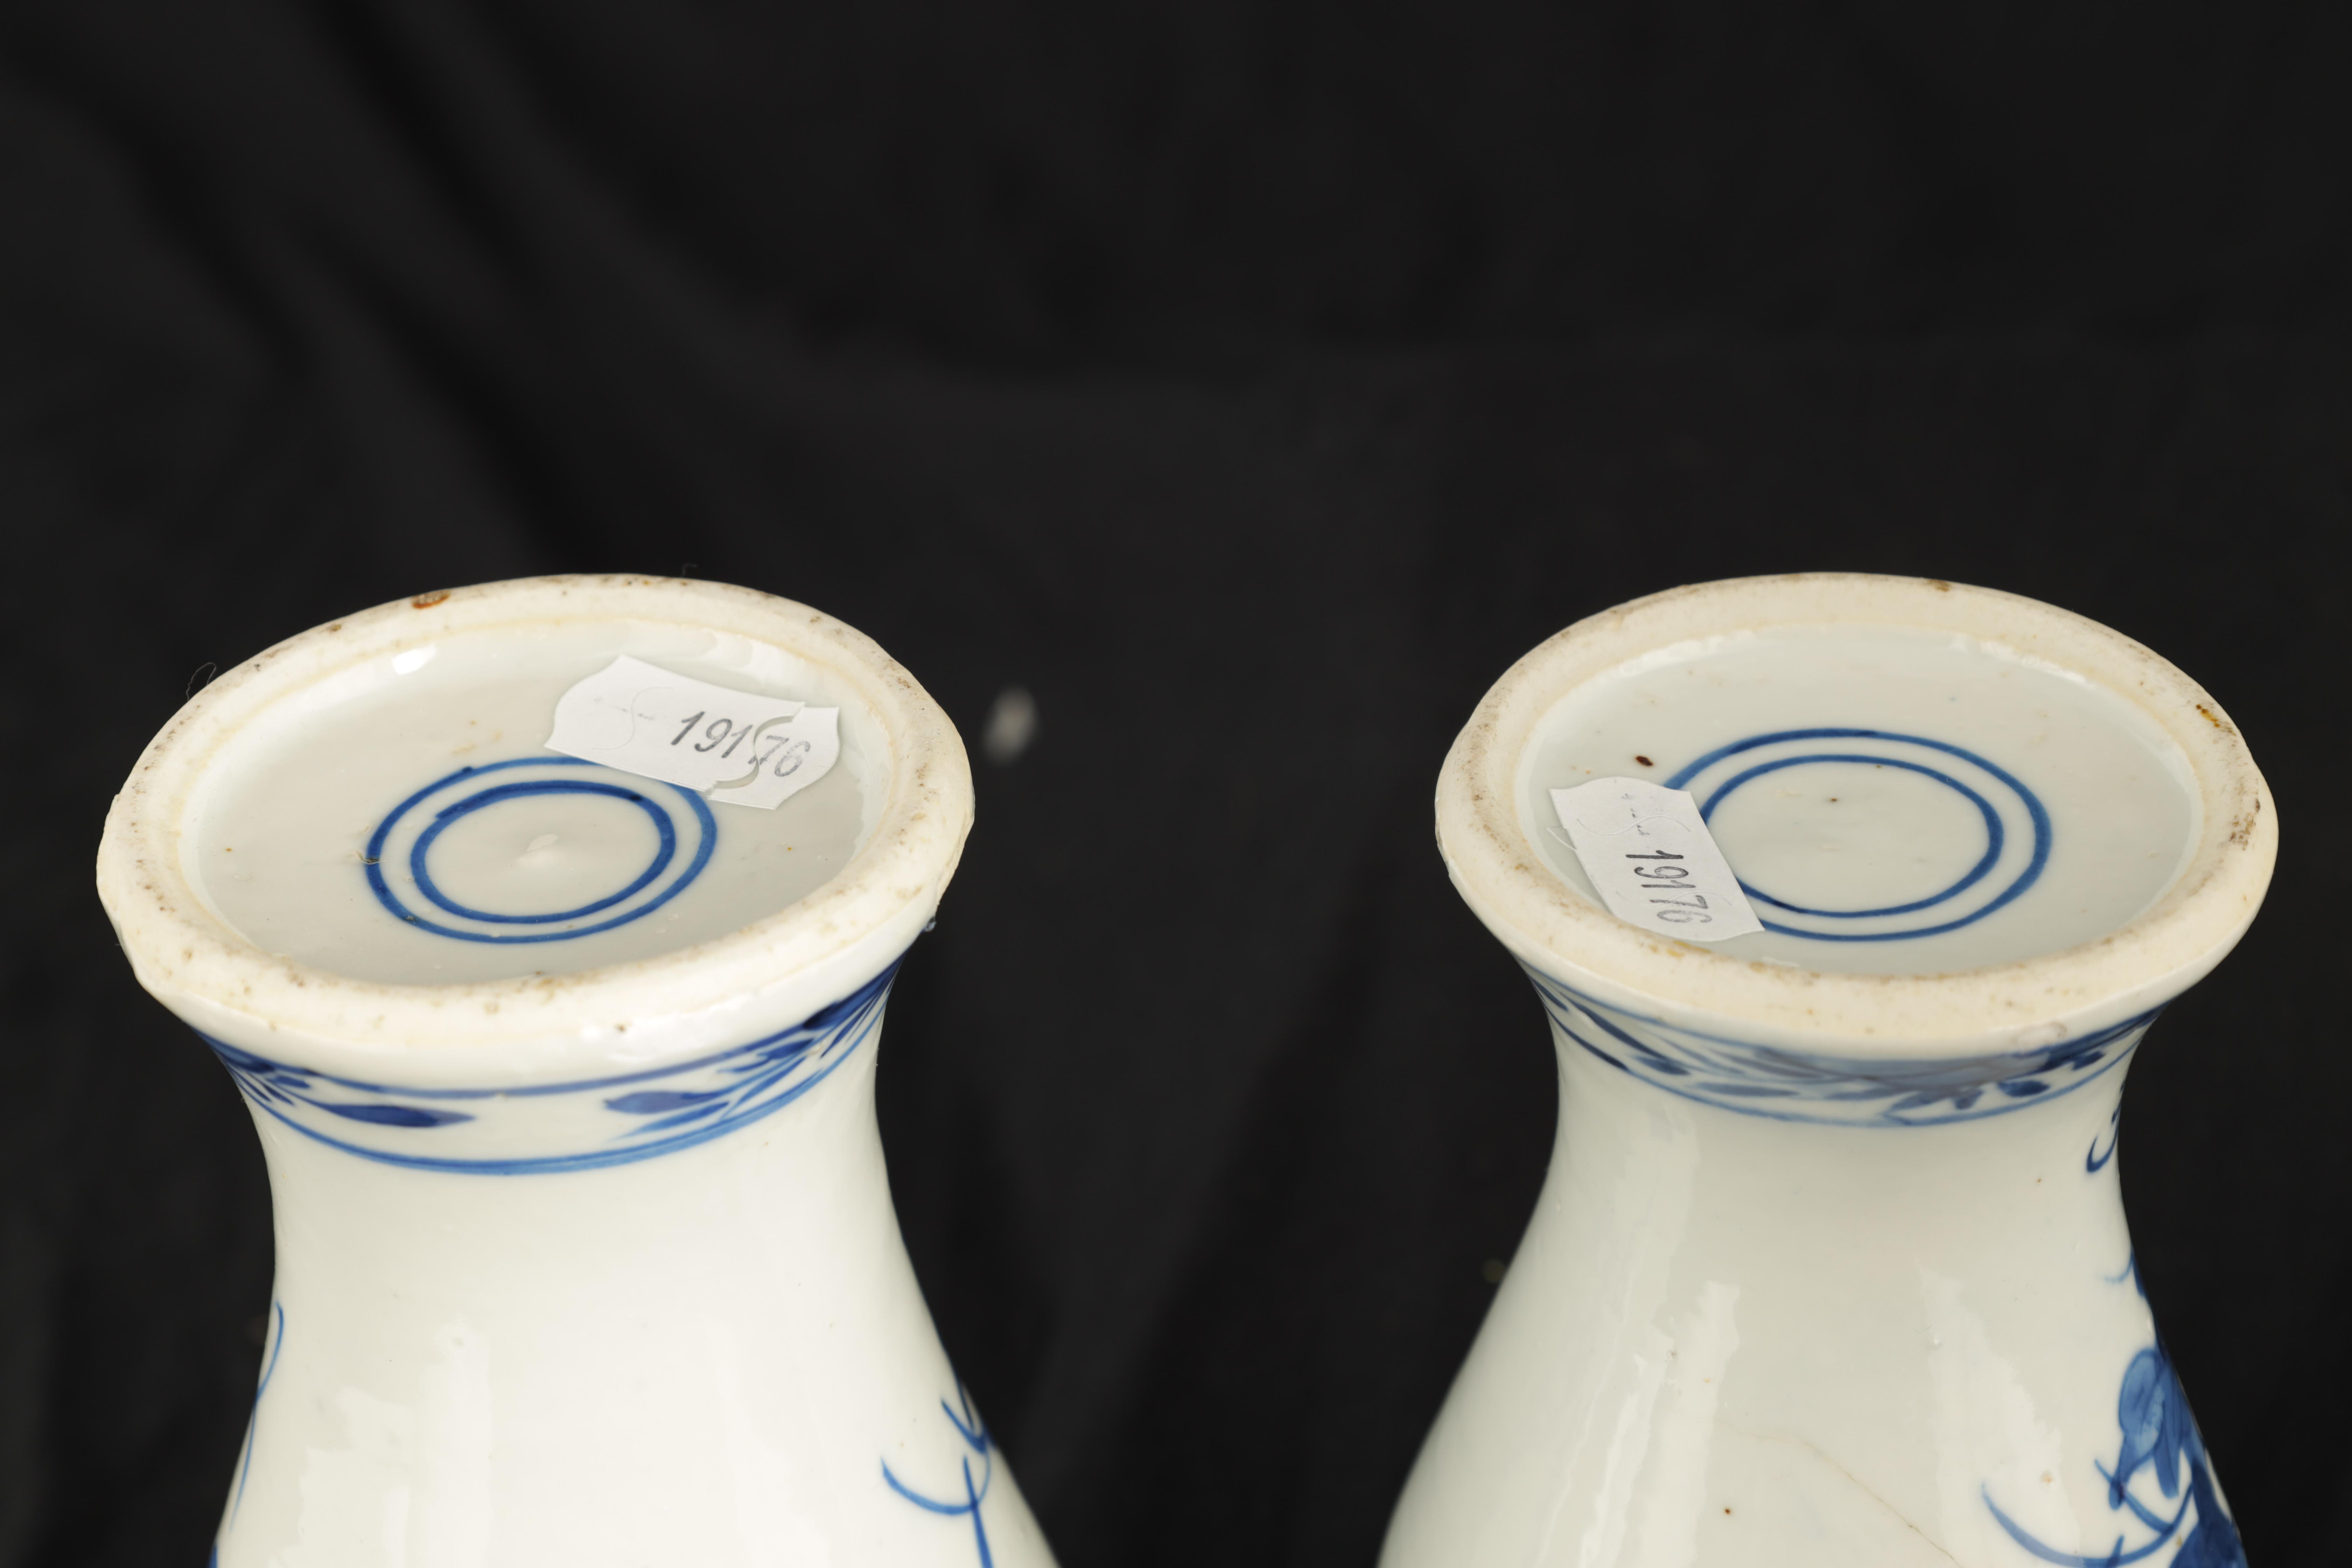 A PAIR OF 19TH CENTURY CHINESE BLUE AND WHITE VASES decorated with blossoming trees and birds 17cm - Image 8 of 9